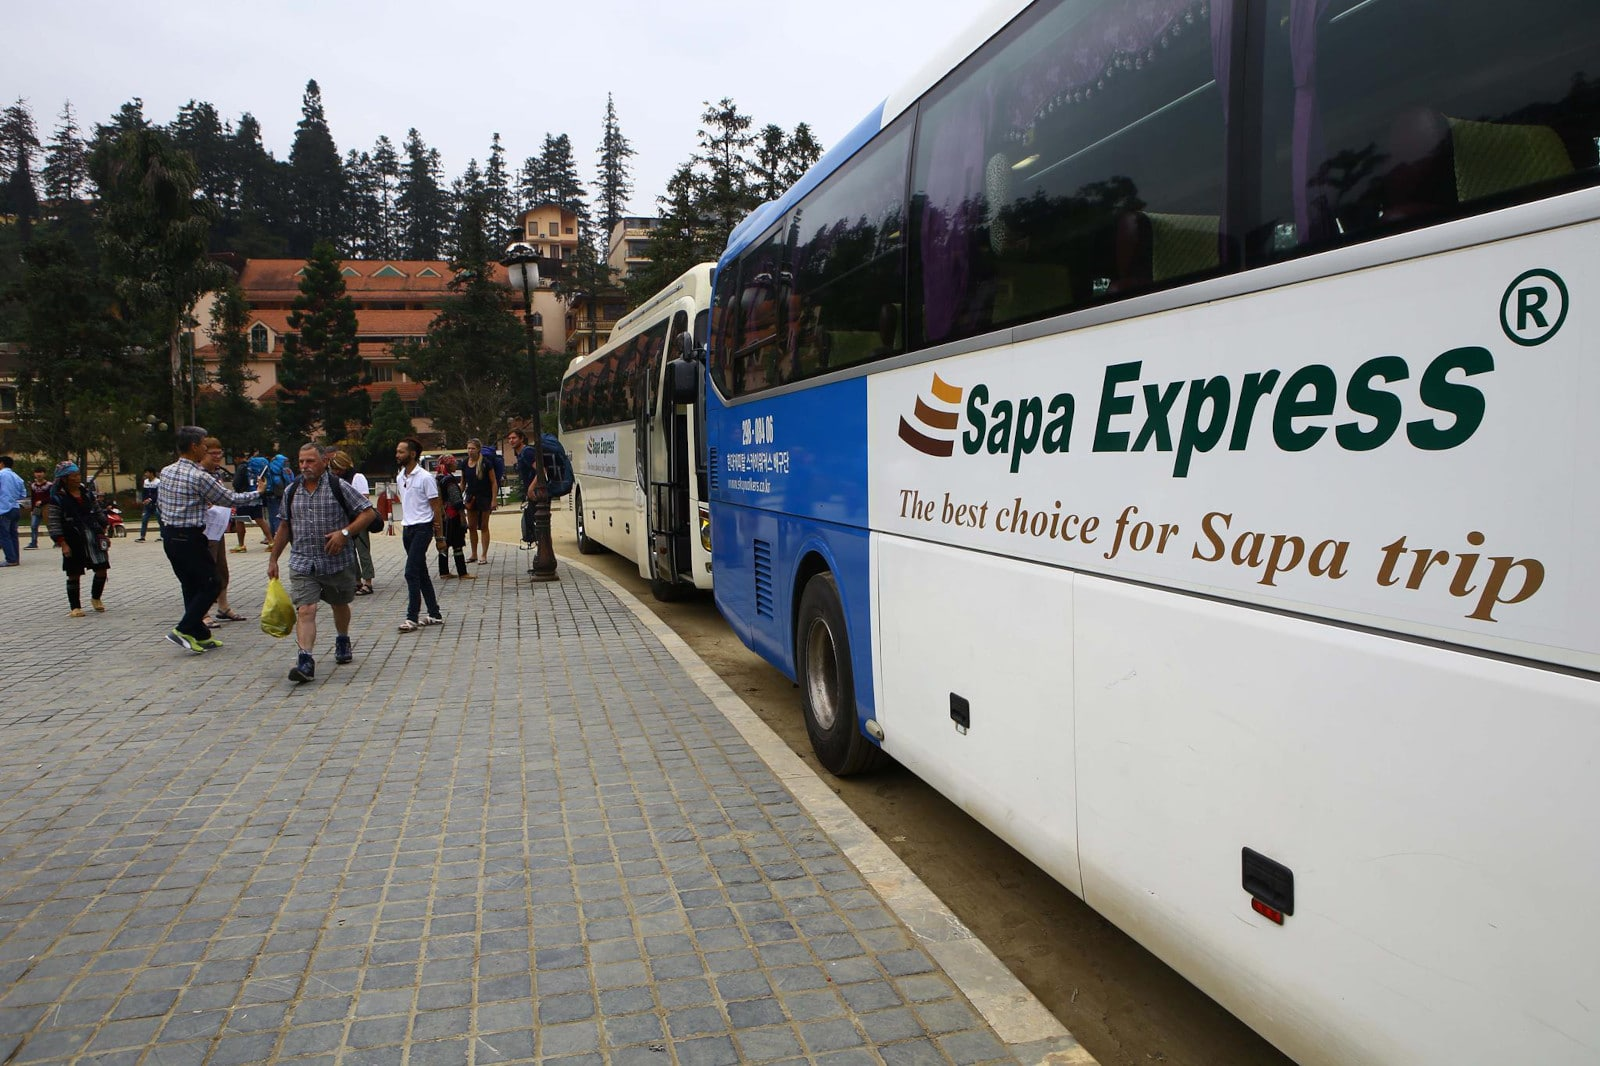 Image of the Sapa Express Bus in Vietnam